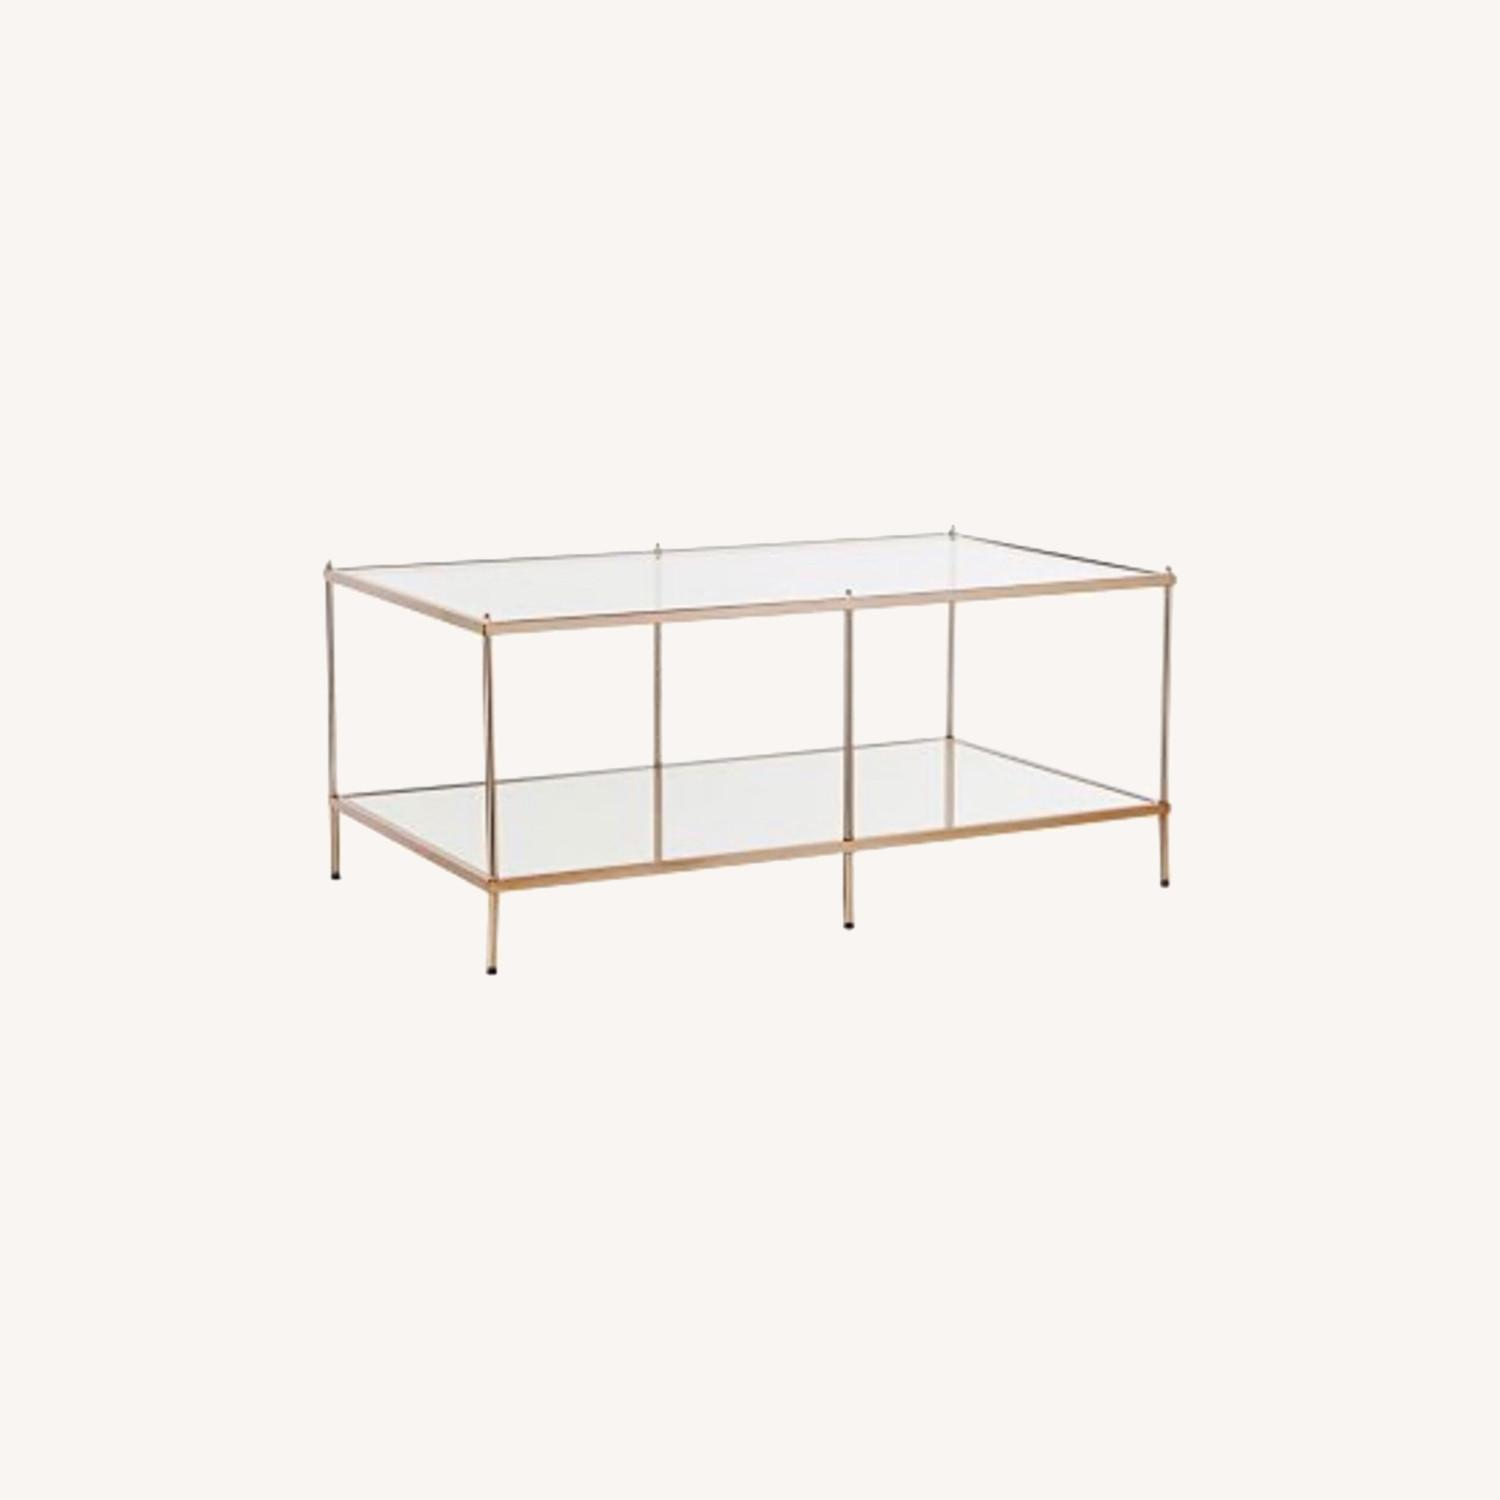 Macy's Glass Coffee Table with Metal Frame - image-0